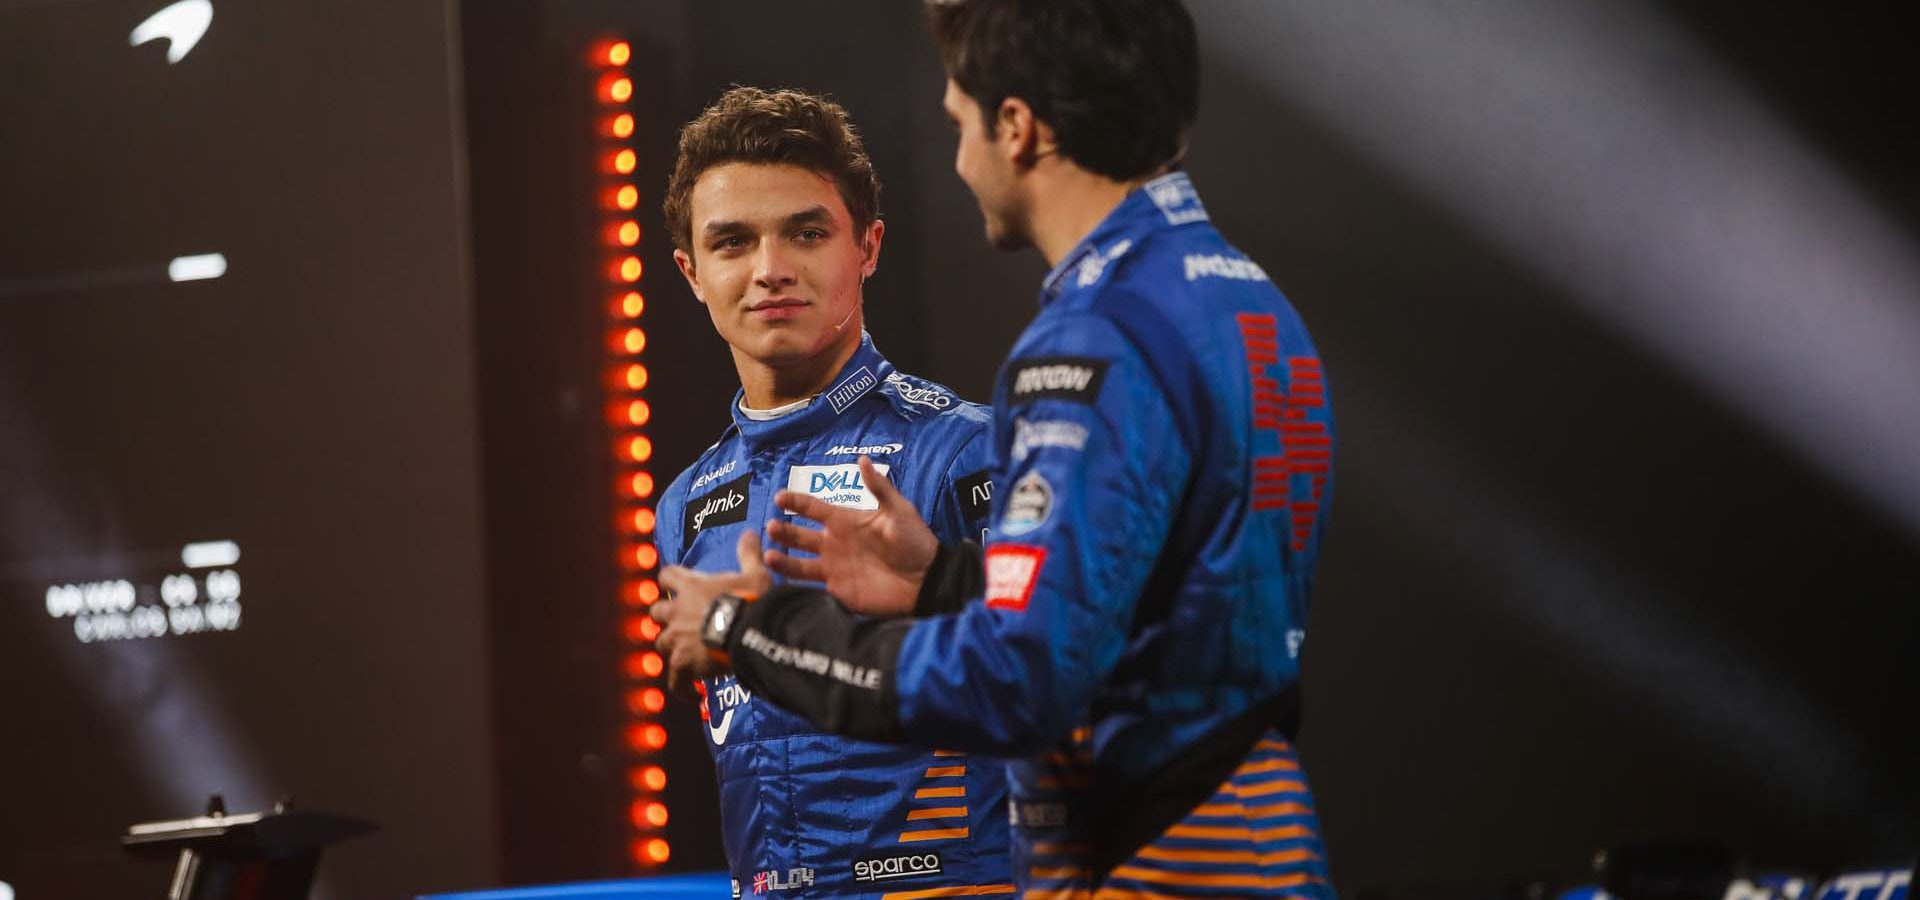 Lando Norris and Carlos Sainz at the MCL35 launch. 13 February 2020